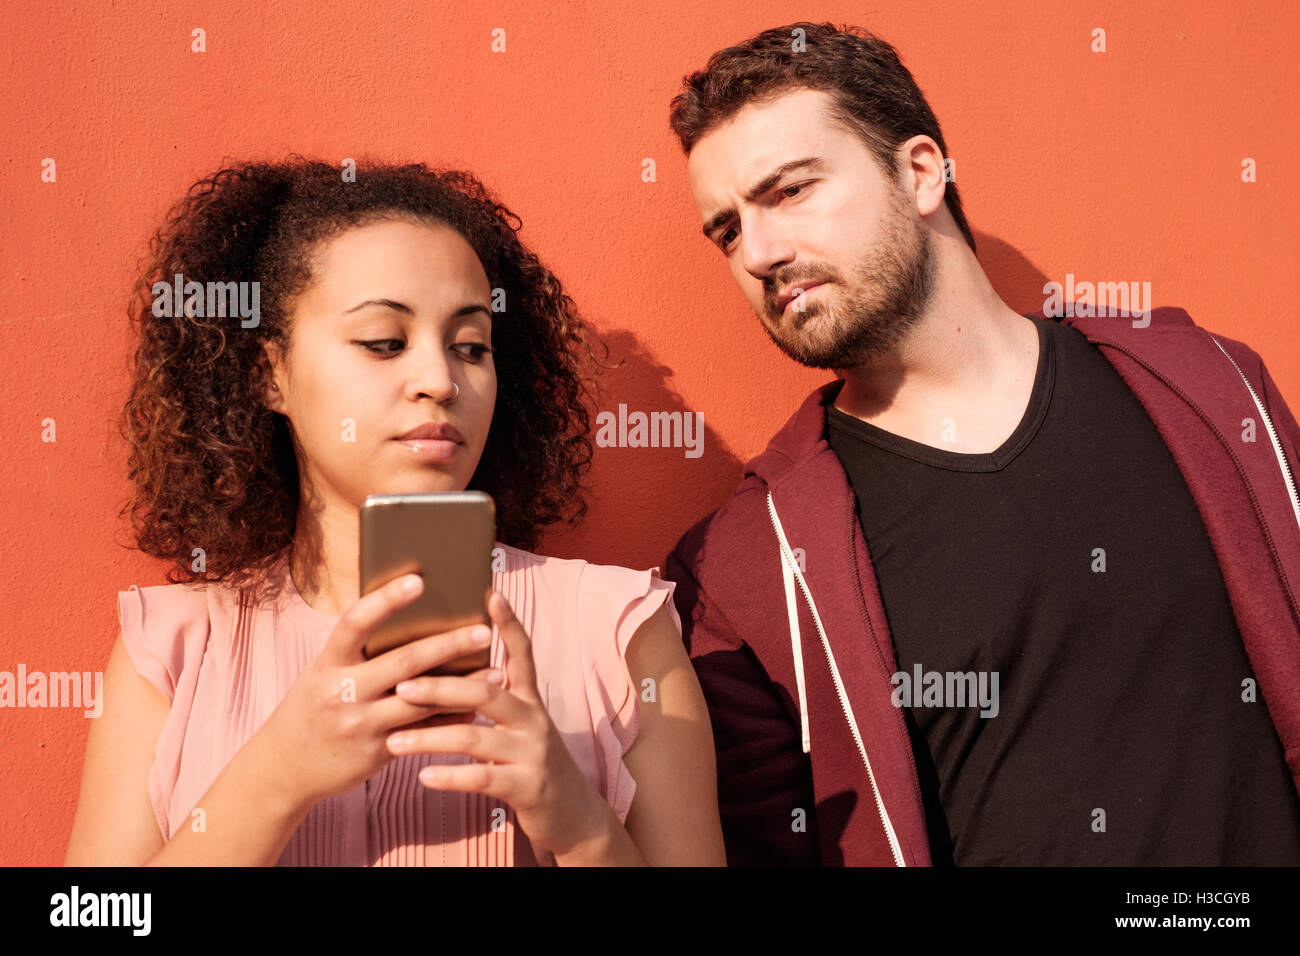 Man spying his girlfriend mobile phone - Stock Image